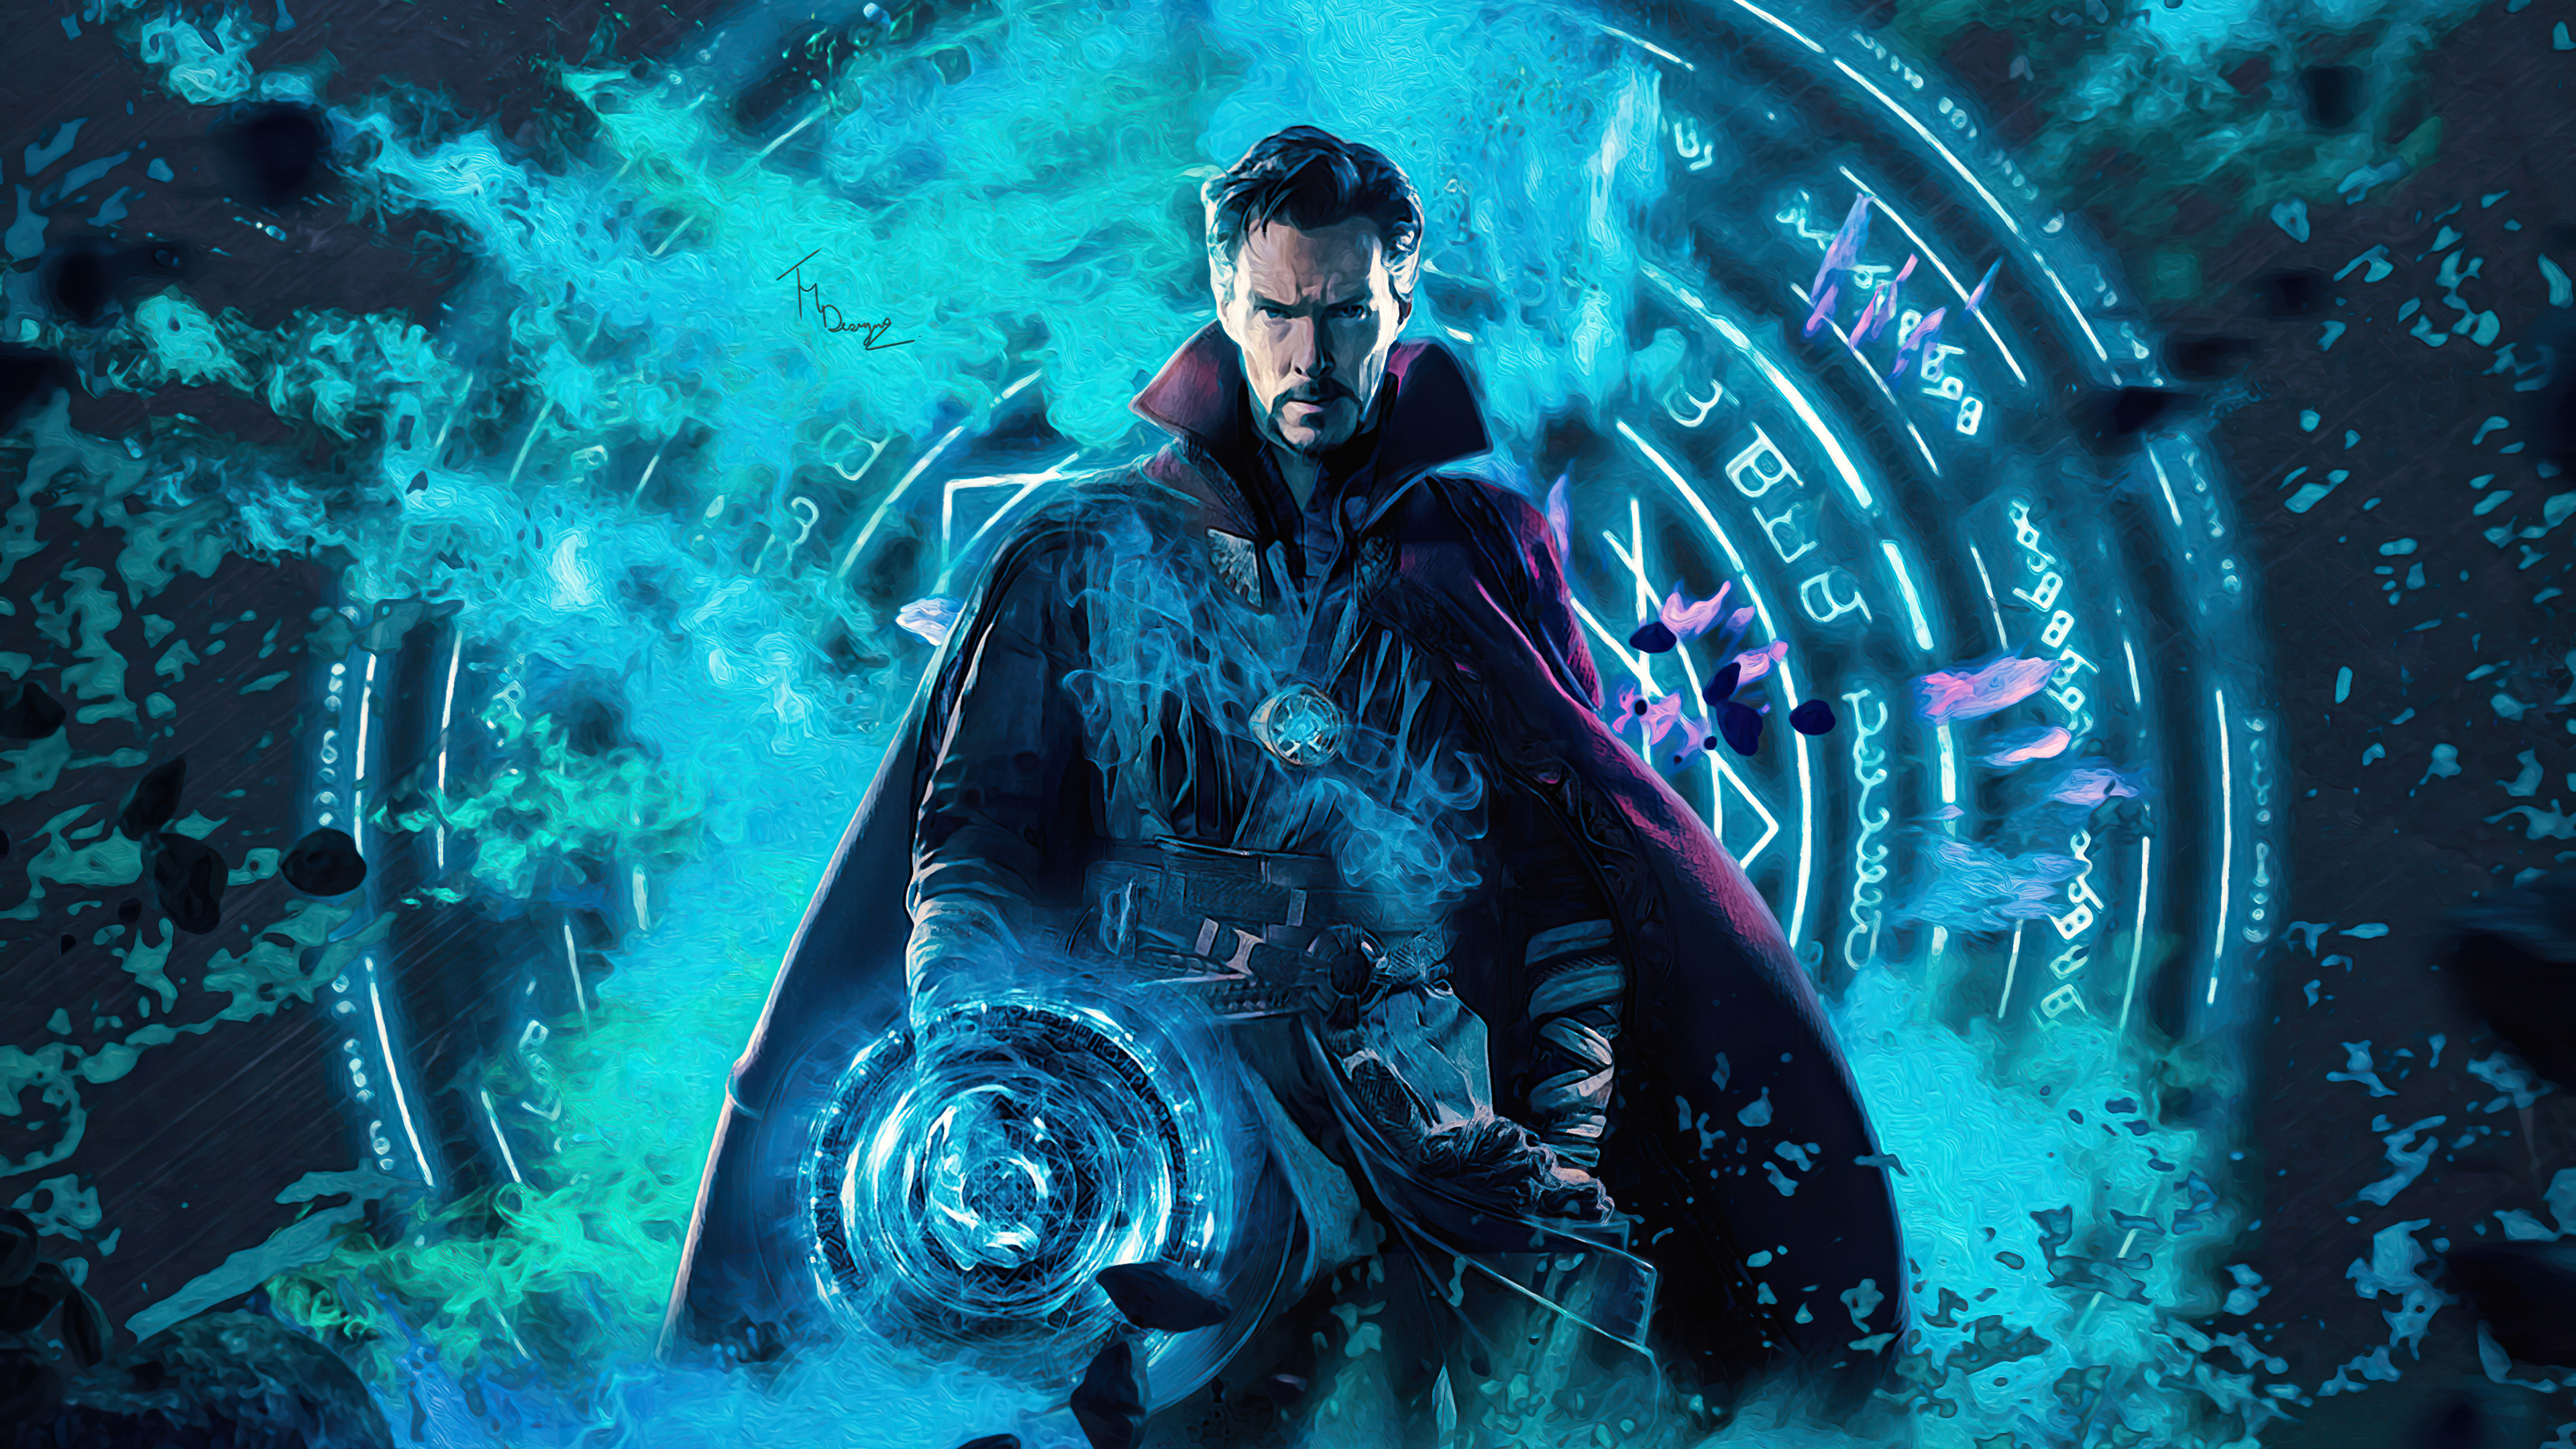 Doctor Strange 4k Artwork 2020 Hd Superheroes 4k Wallpapers Images Backgrounds Photos And Pictures